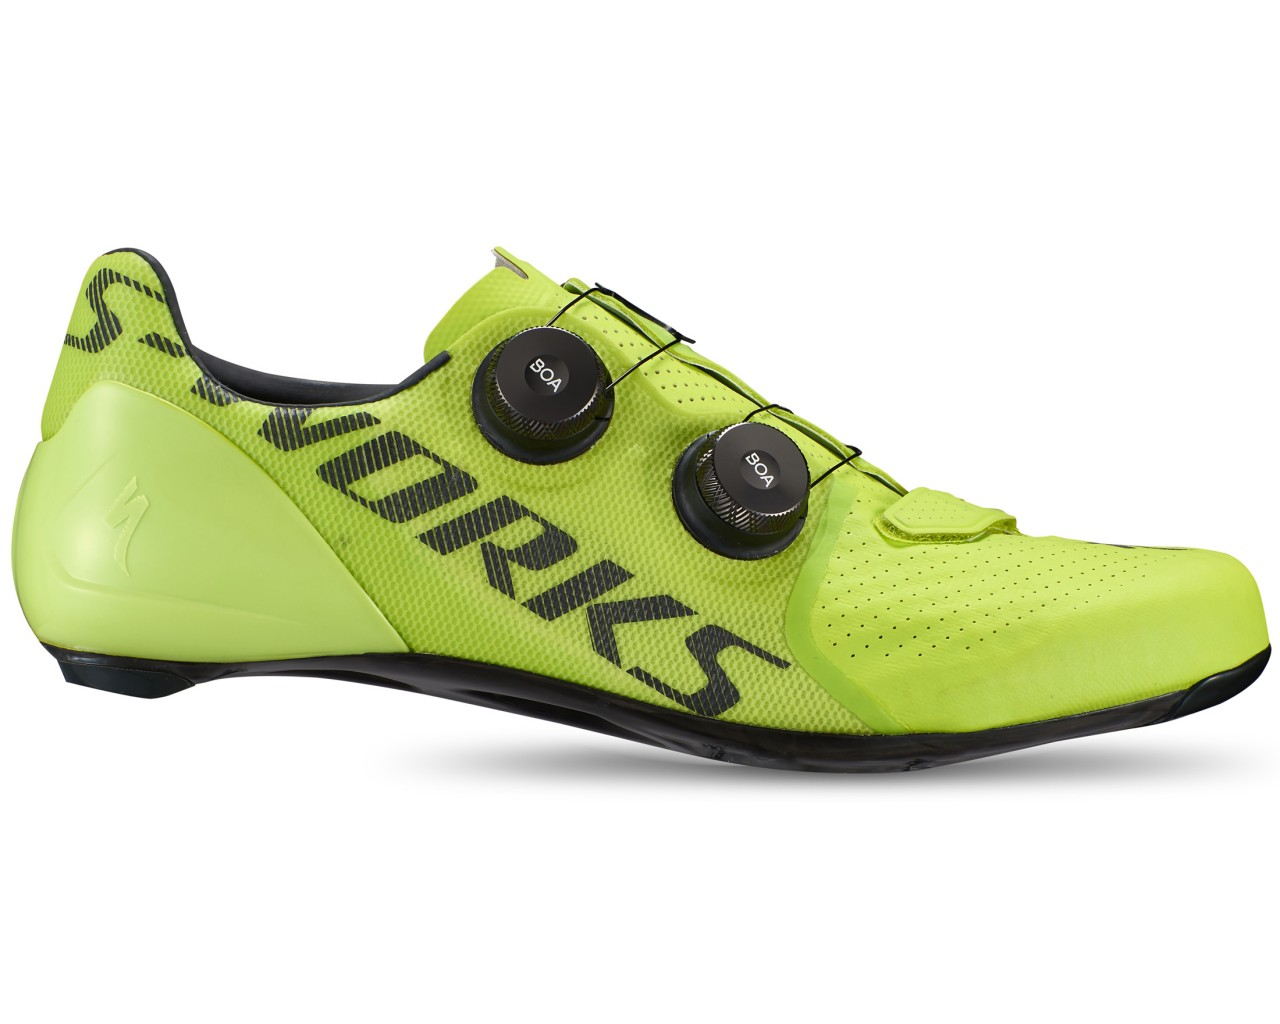 Specialized S-Works 7 Road Bike Shoes | hyper